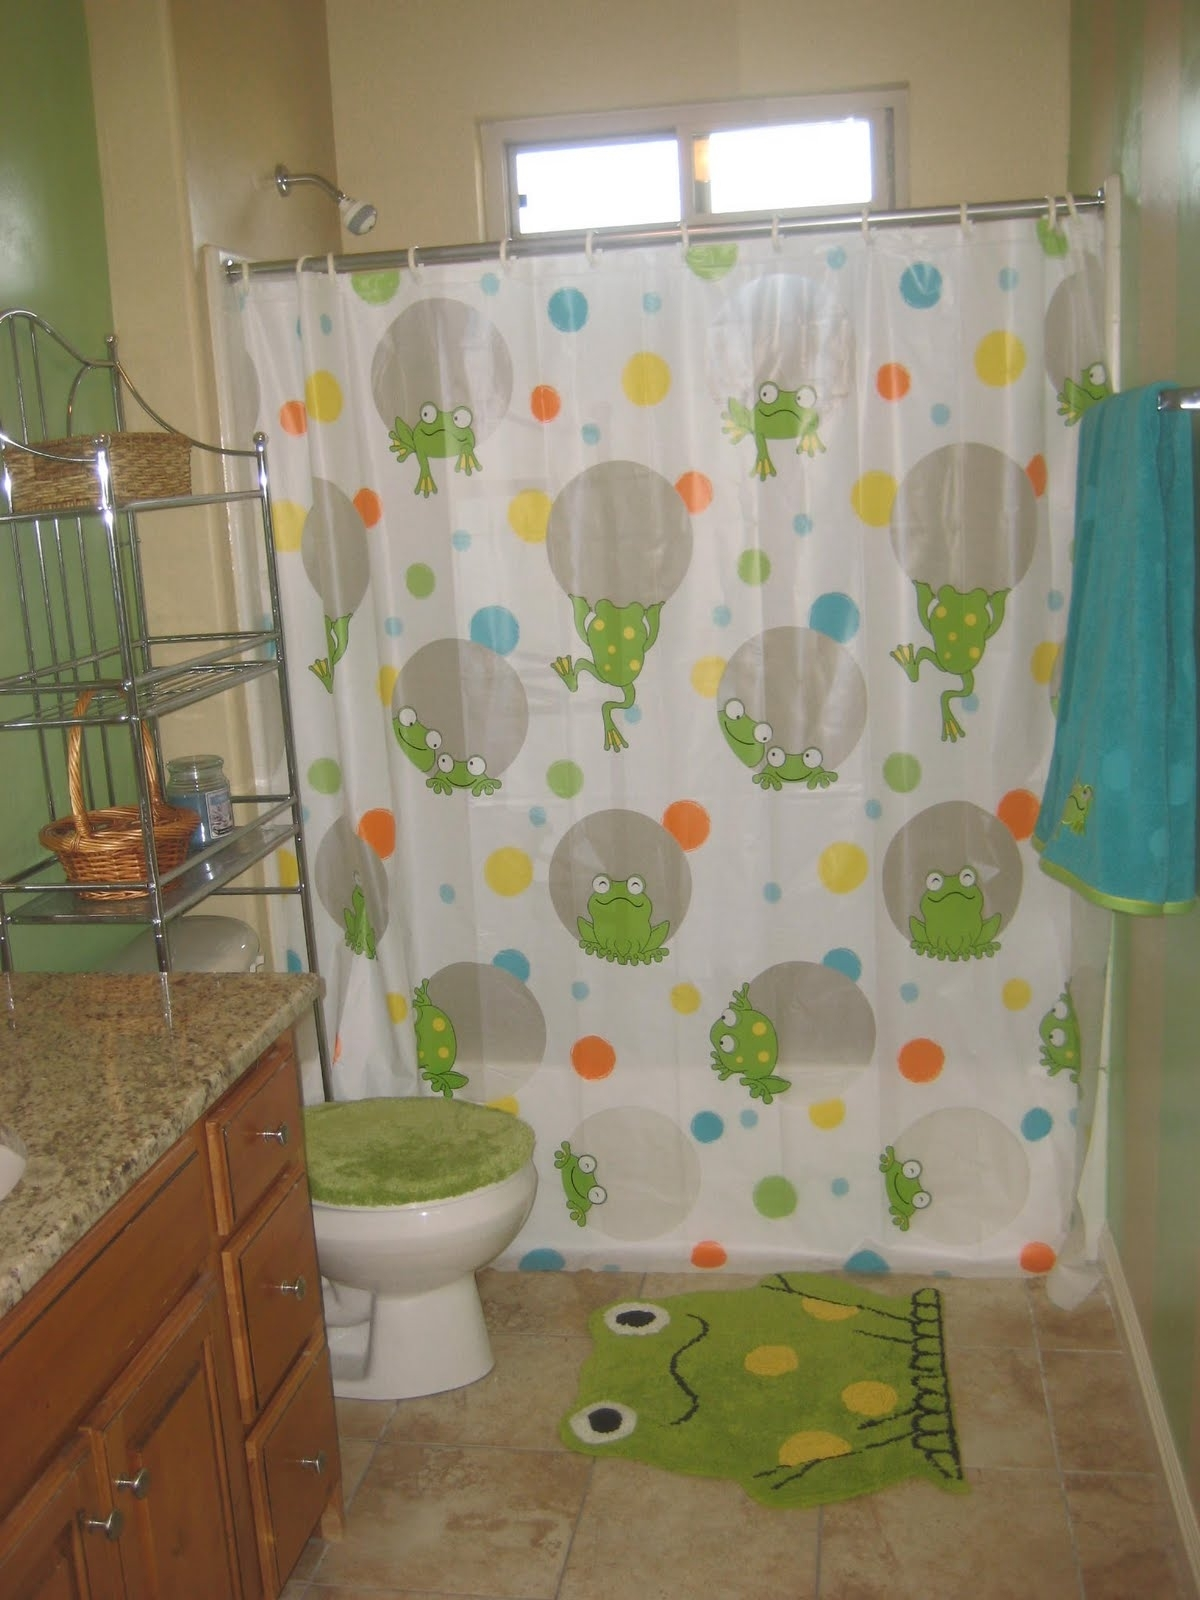 What To Wear With Khaki Pants: Frog Bathroom Accessories Frog Bathroom Decorating